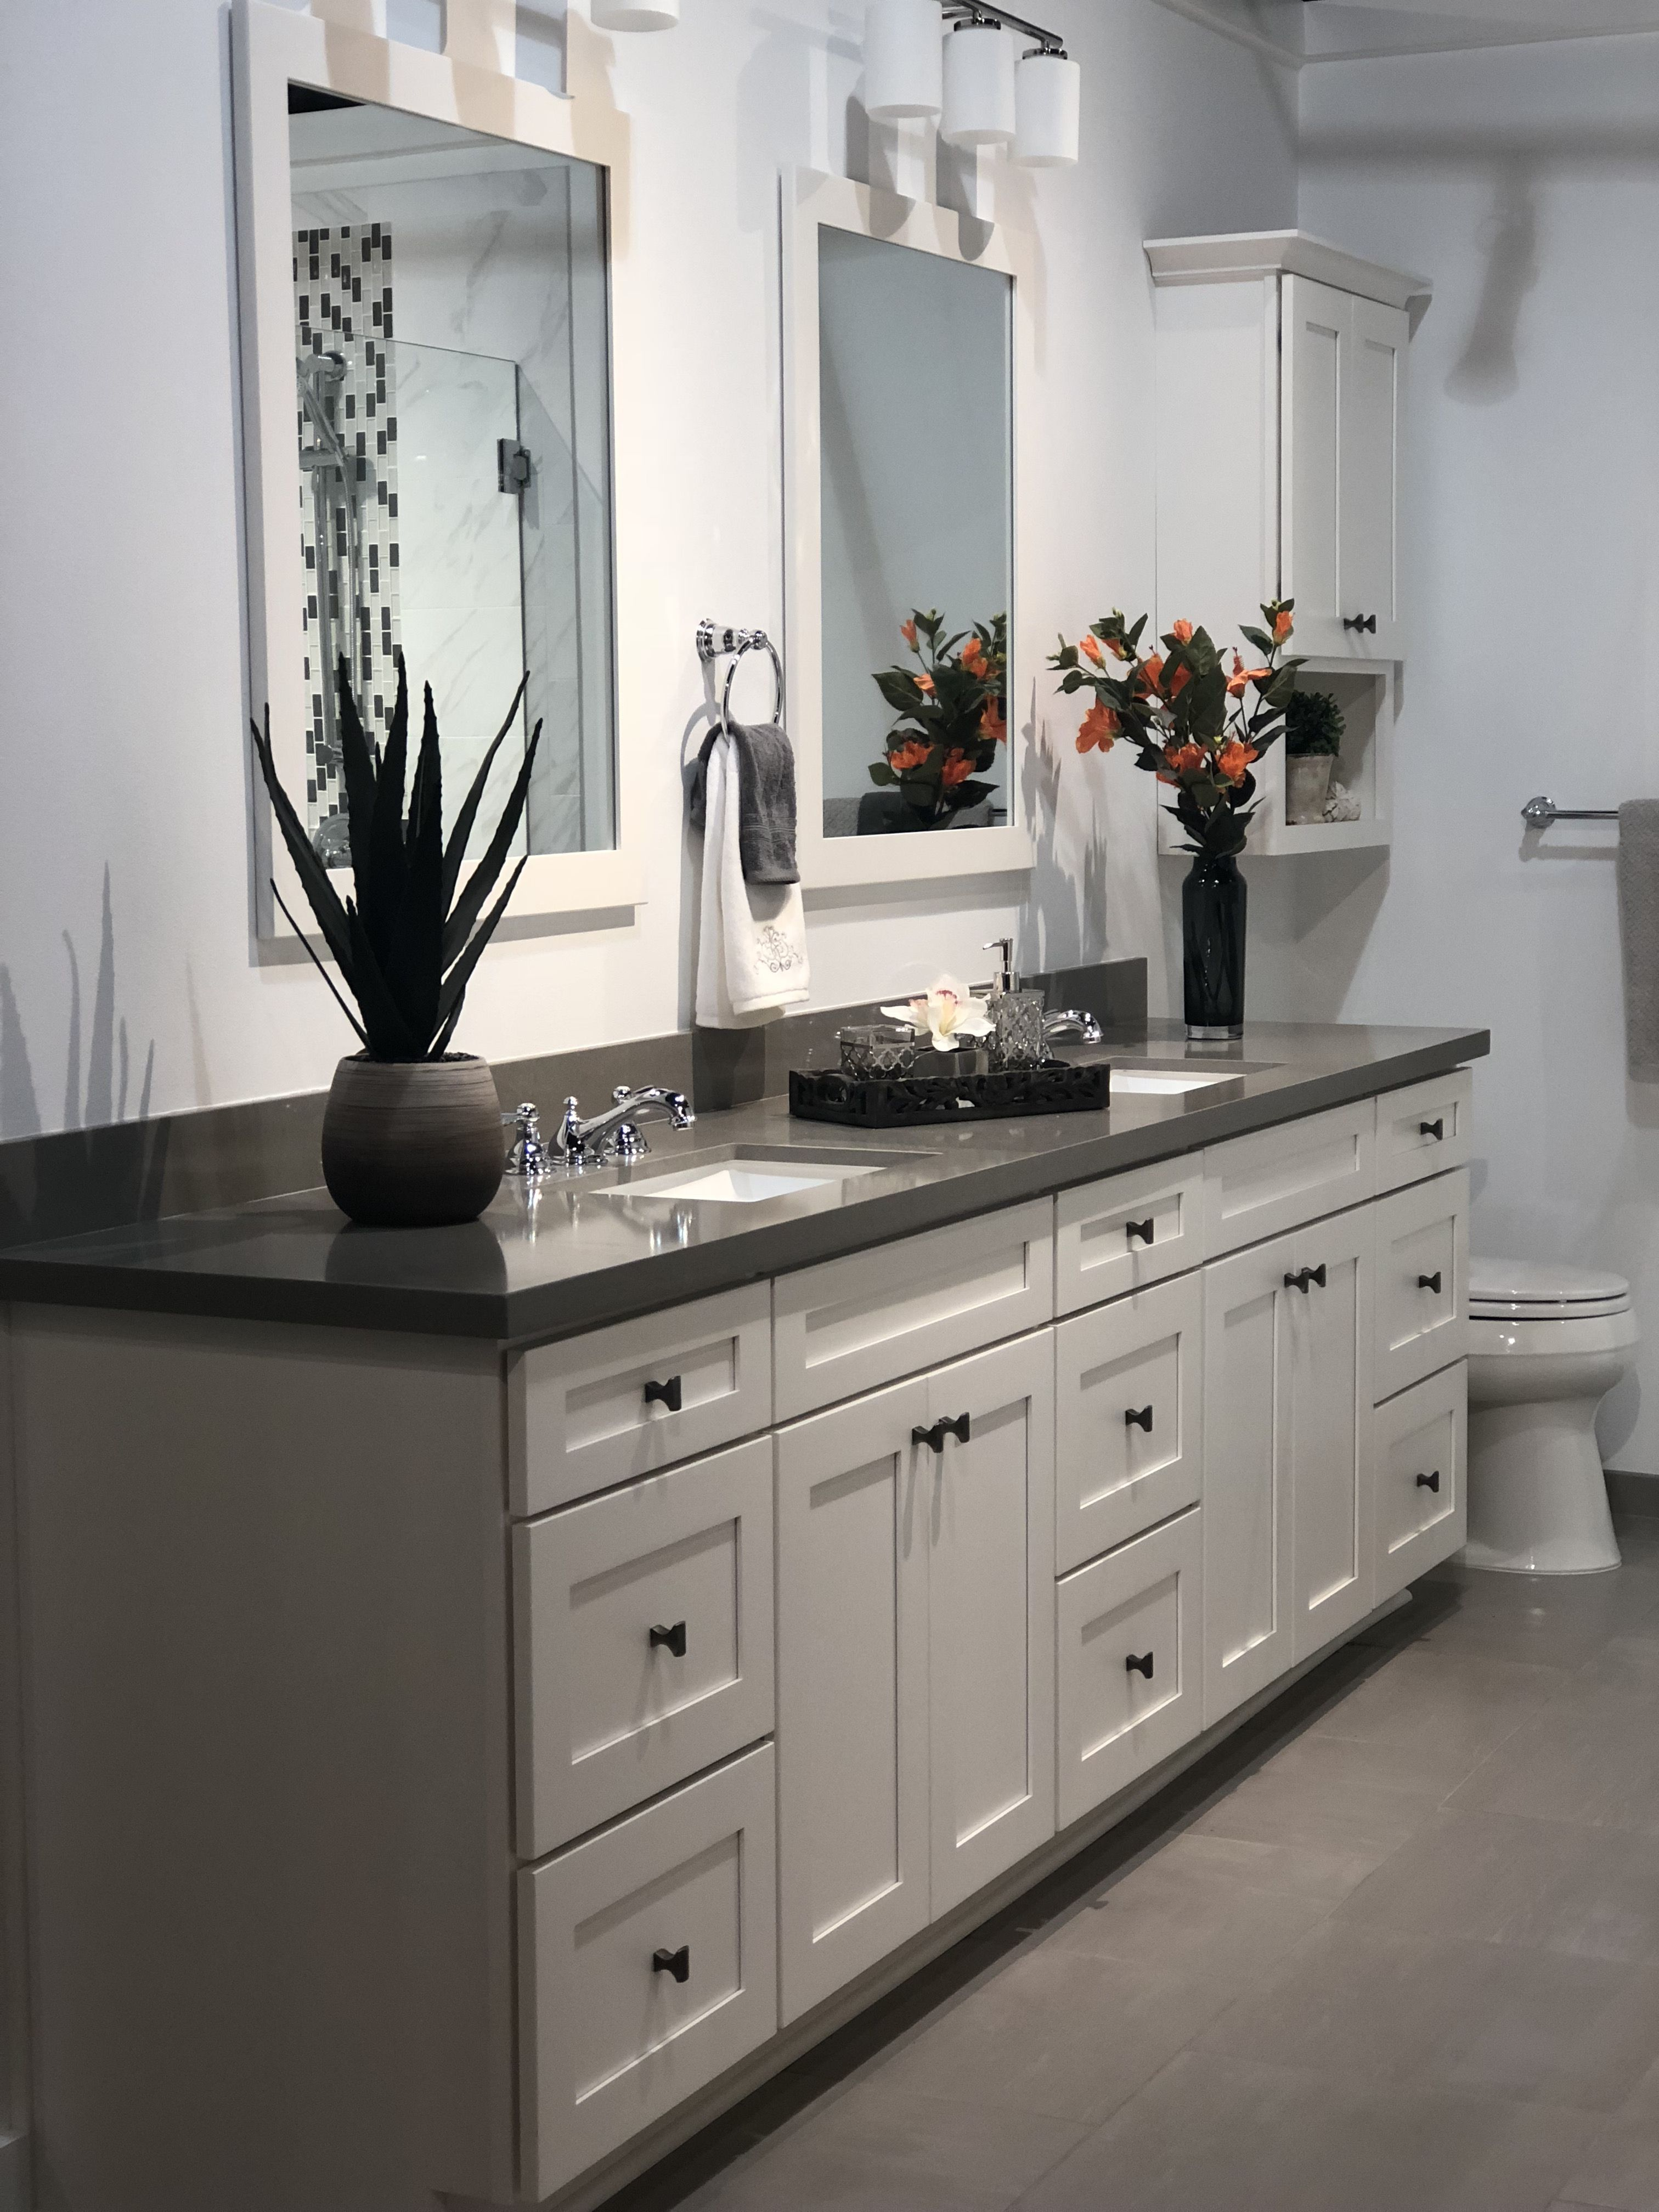 Bathroom Vanity Not The Floors Or Counters Grey Countertops